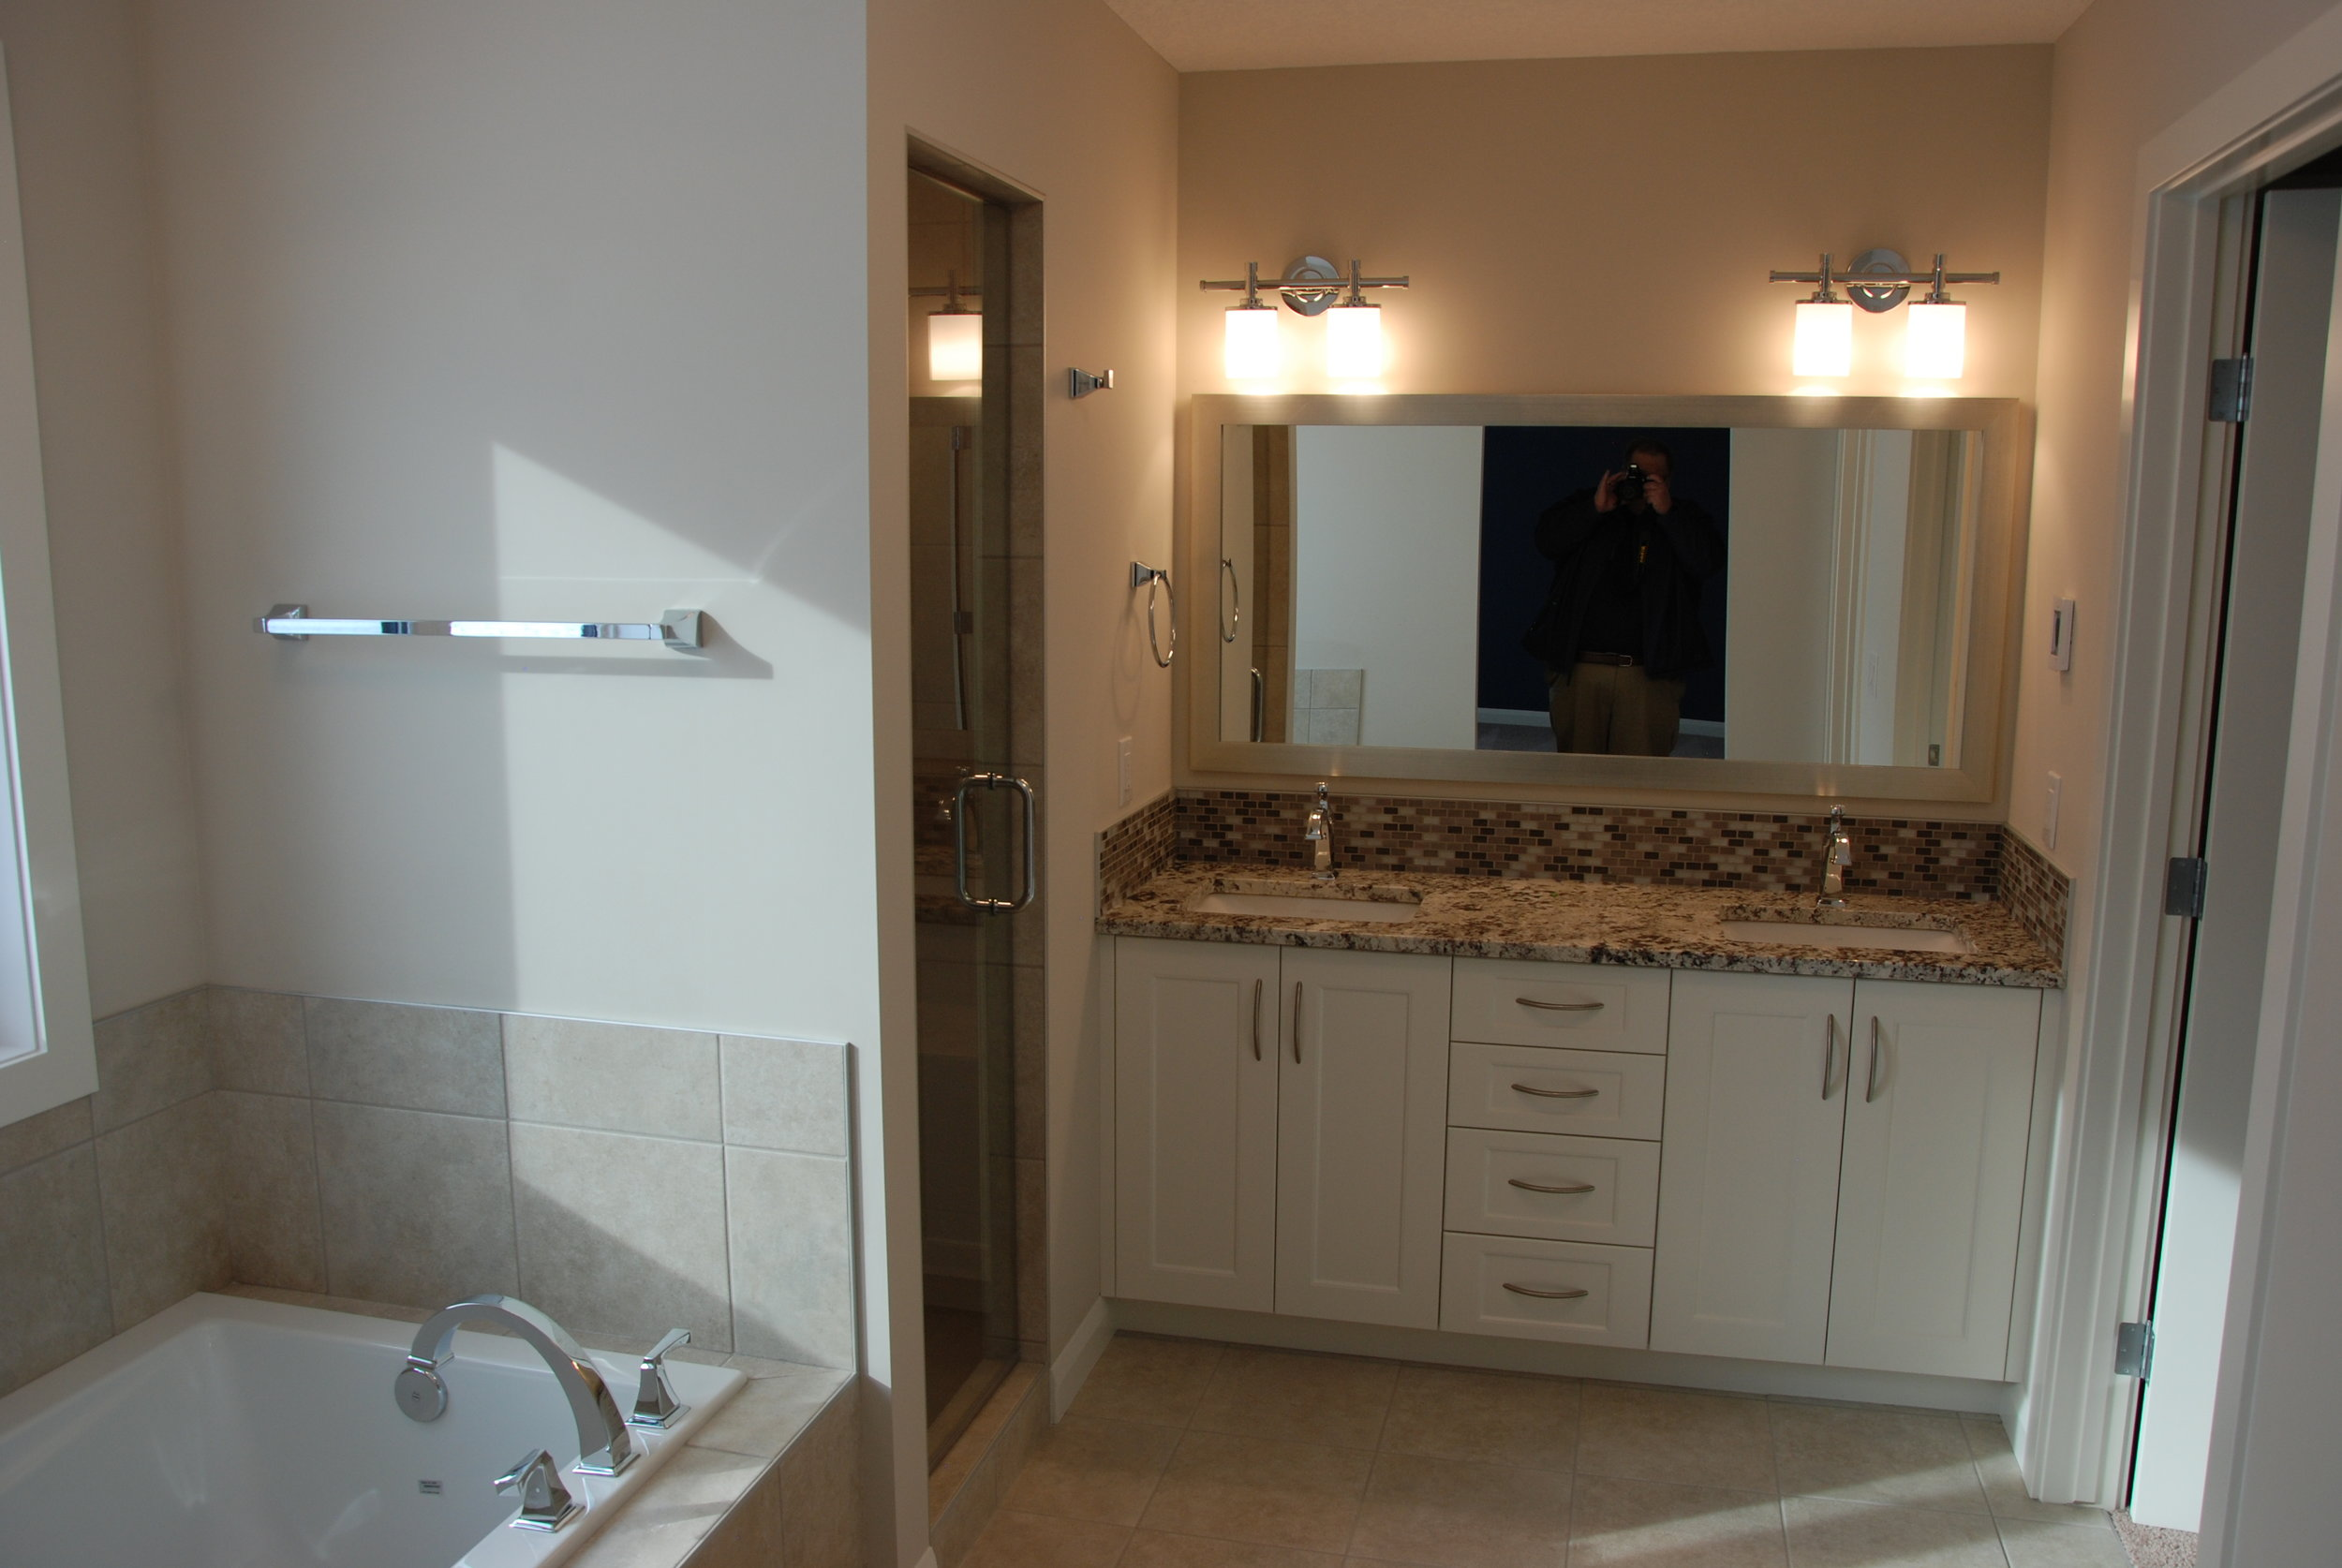 The master bath provides a blend of practicality and luxury.Heated Italian ceramic tile, a soaker tub and a steam shower provide an at-home spa feel, while his and her's sinks and a private toilet room make mornings easy.